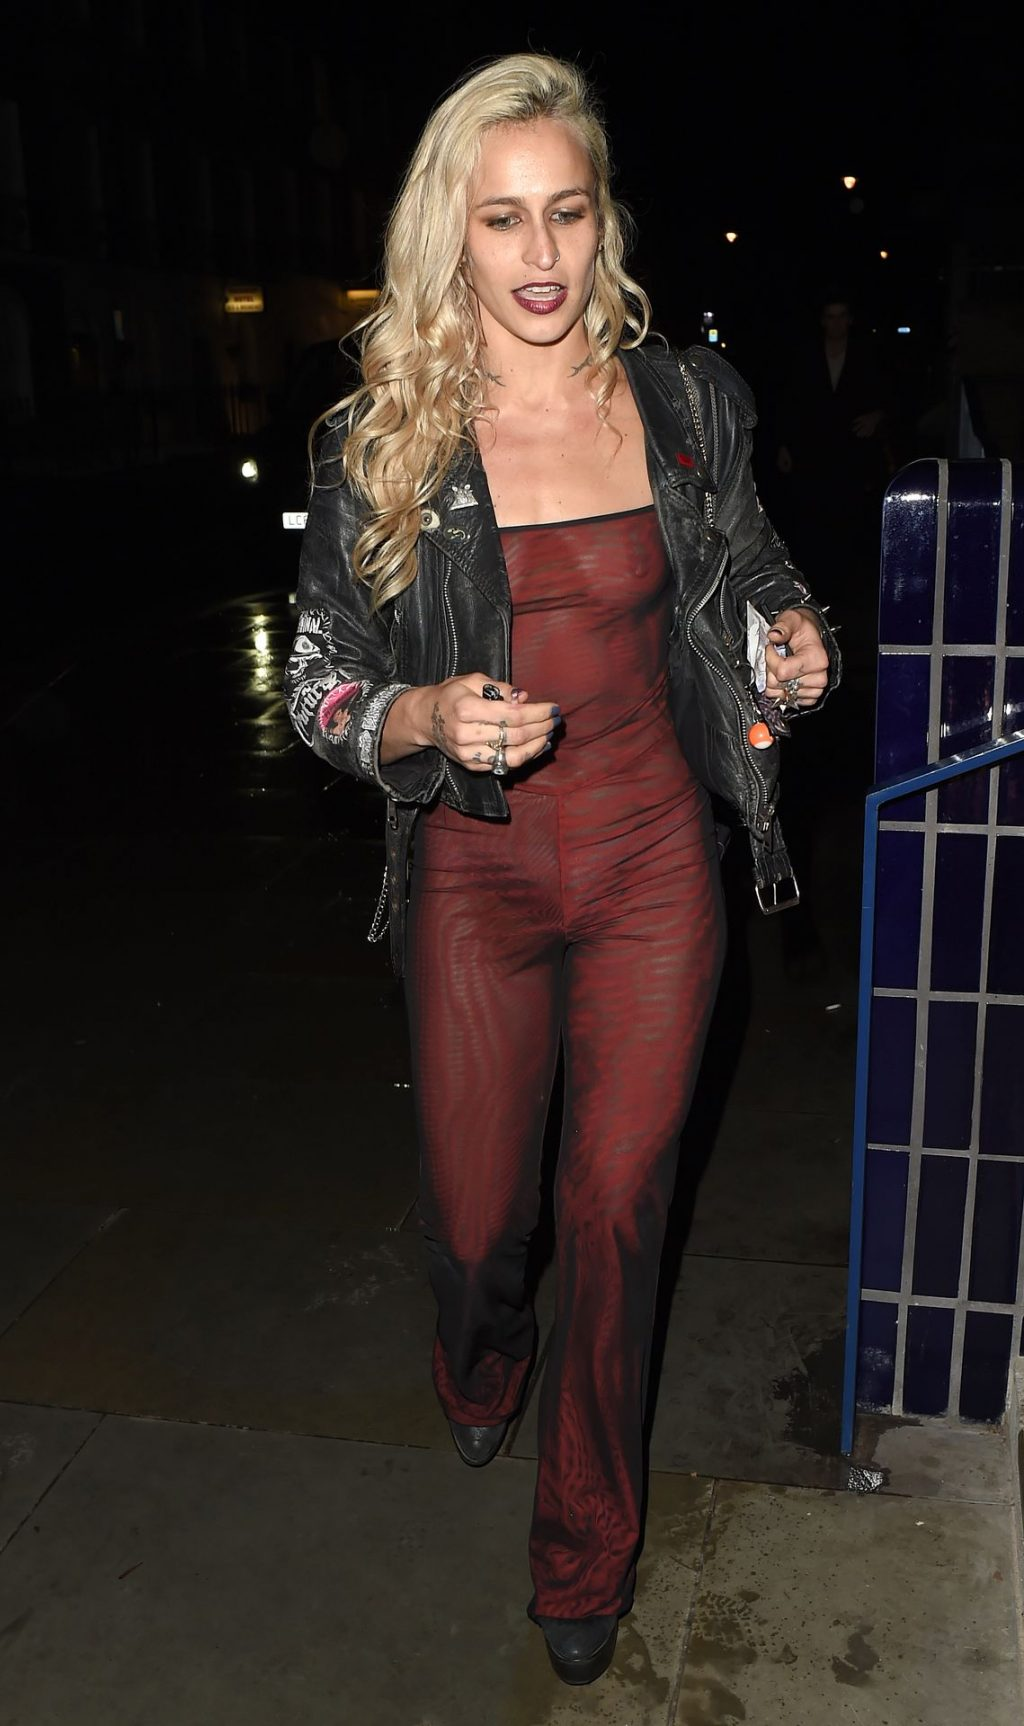 Alice Dellal See Through The Fappening Blog 16 1024x1726 - Alice Dellal Shows Her Tits at the NME Awards After Party (25 Photos)